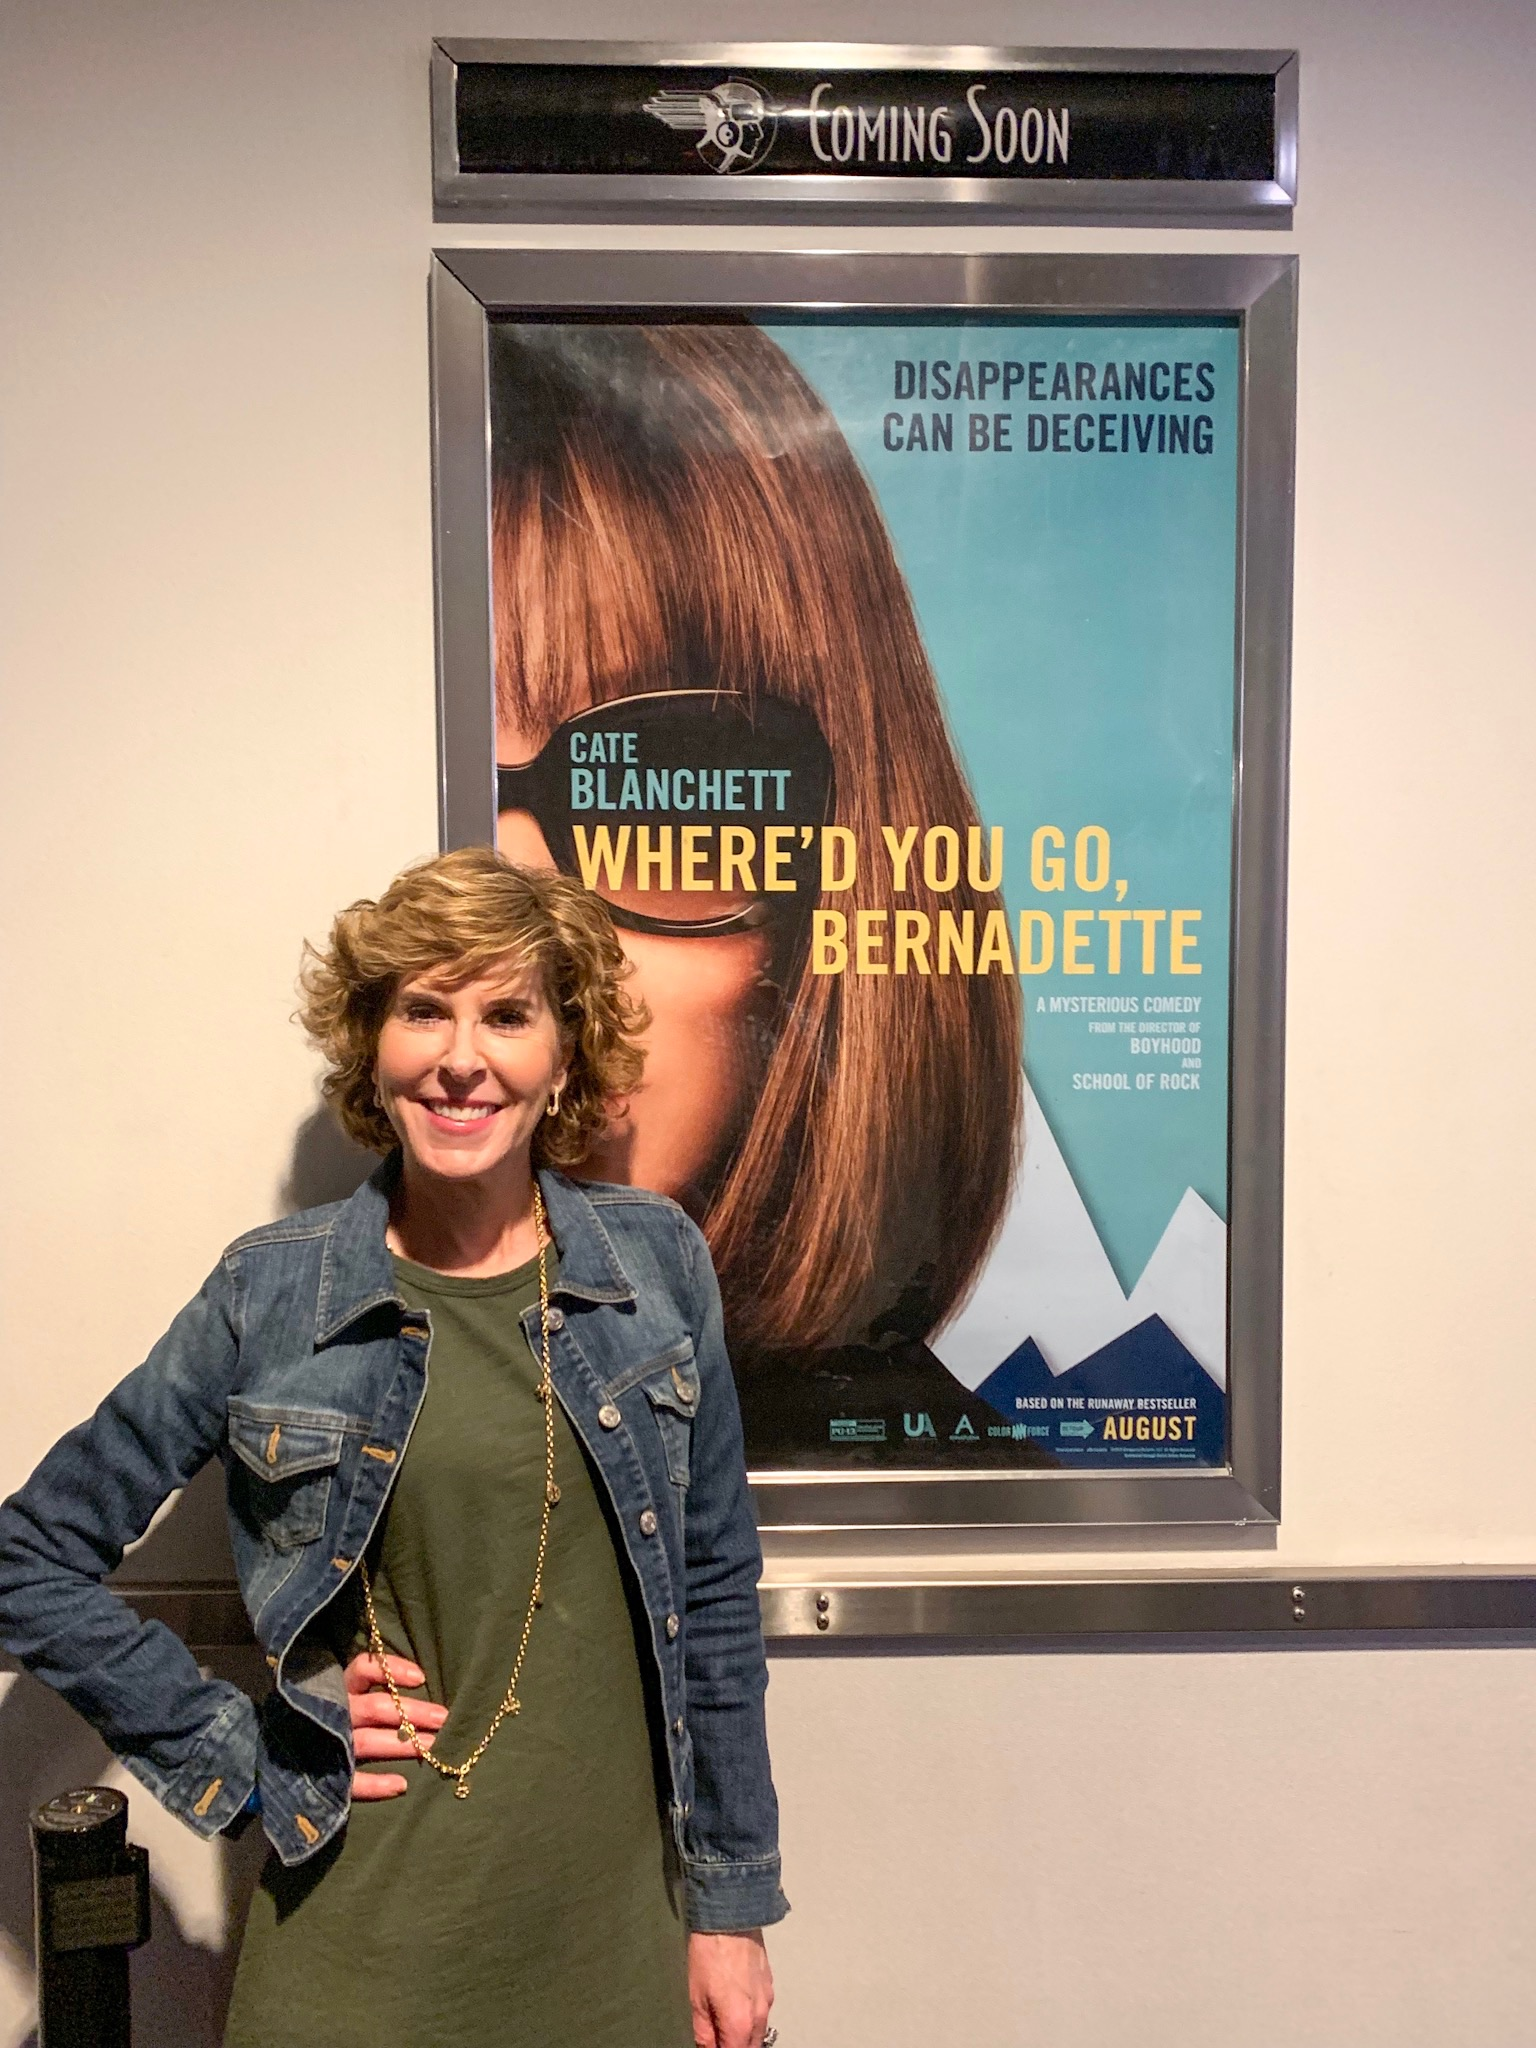 woman standing in front of movie poster